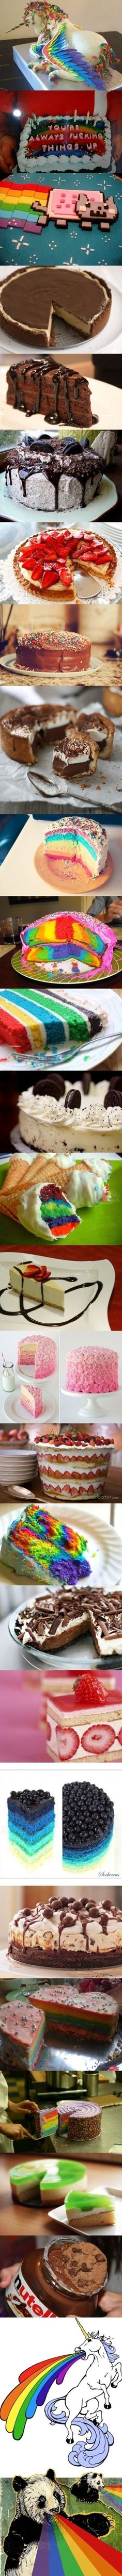 Awesome Cakes - MEME, Funny Pictures and LOL